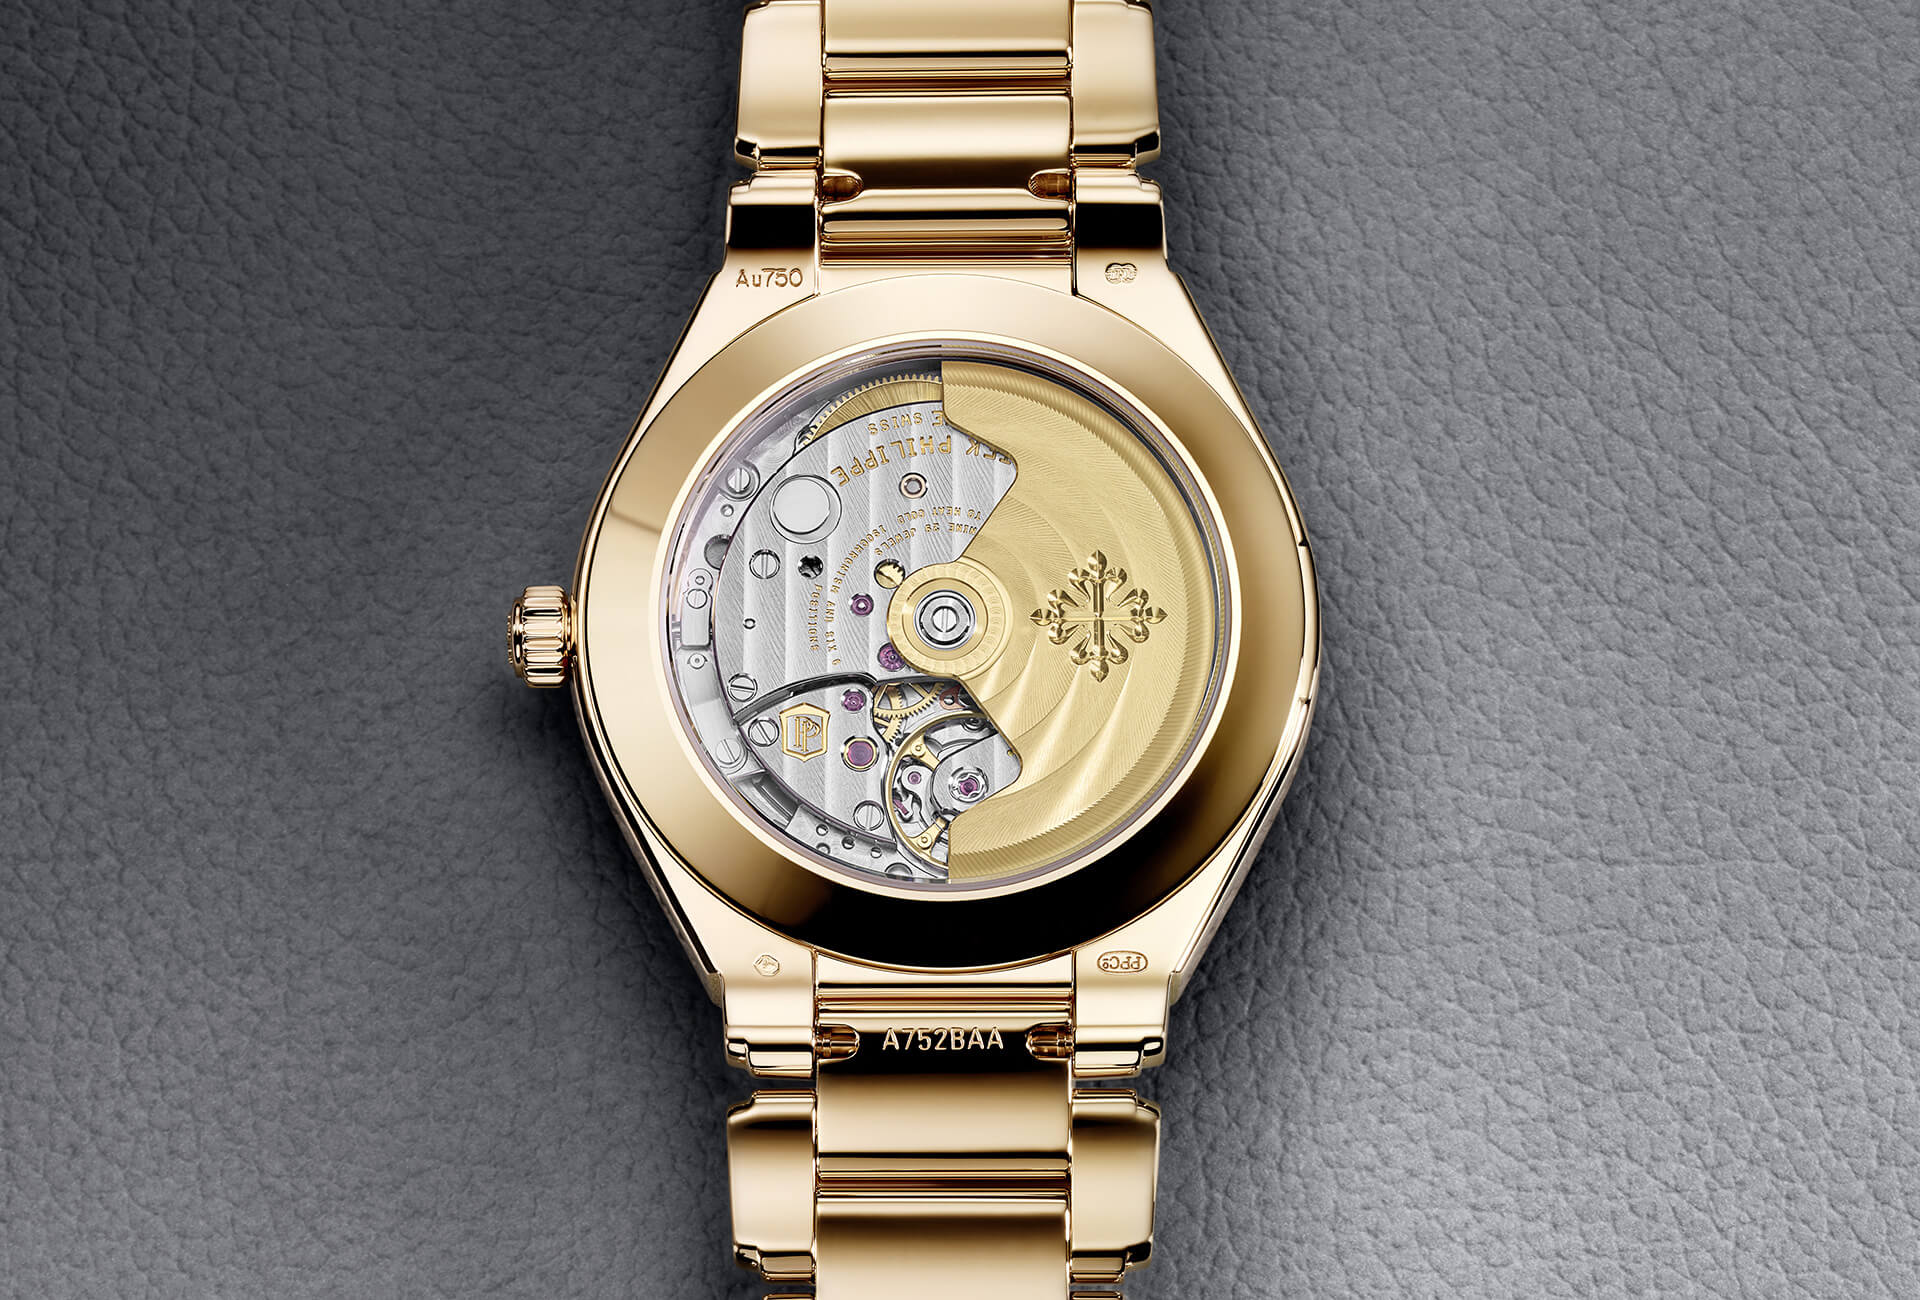 82491d659044ee In Milan, Patek Philippe unveiled Twenty-4 Automatic for women – FHH ...